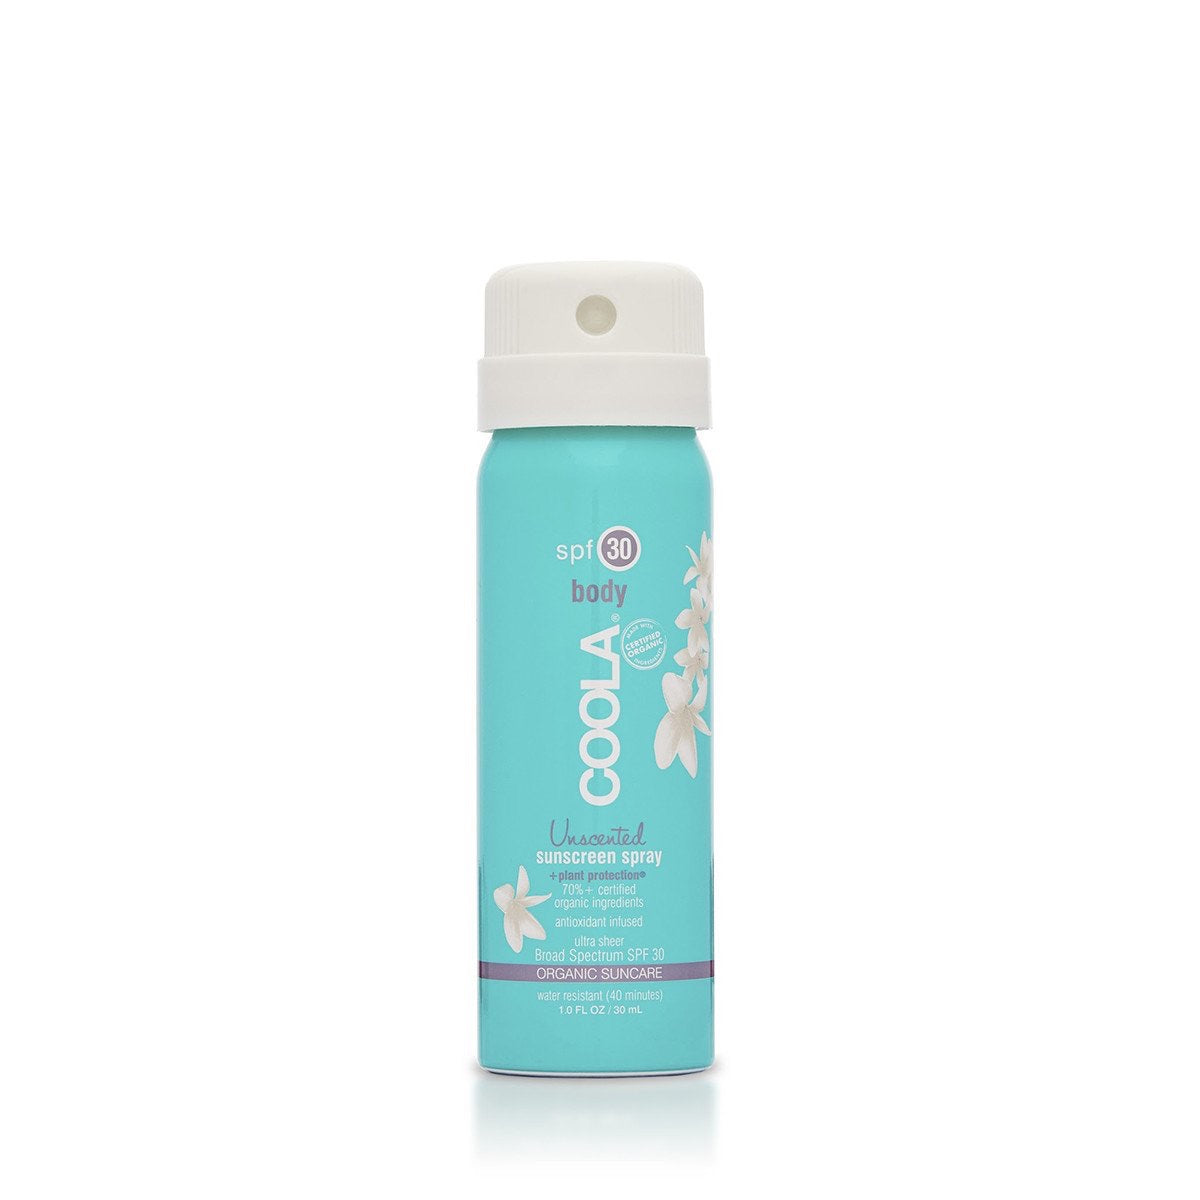 COOLA Organic Sunscreen Spray SPF 30 - Unscented